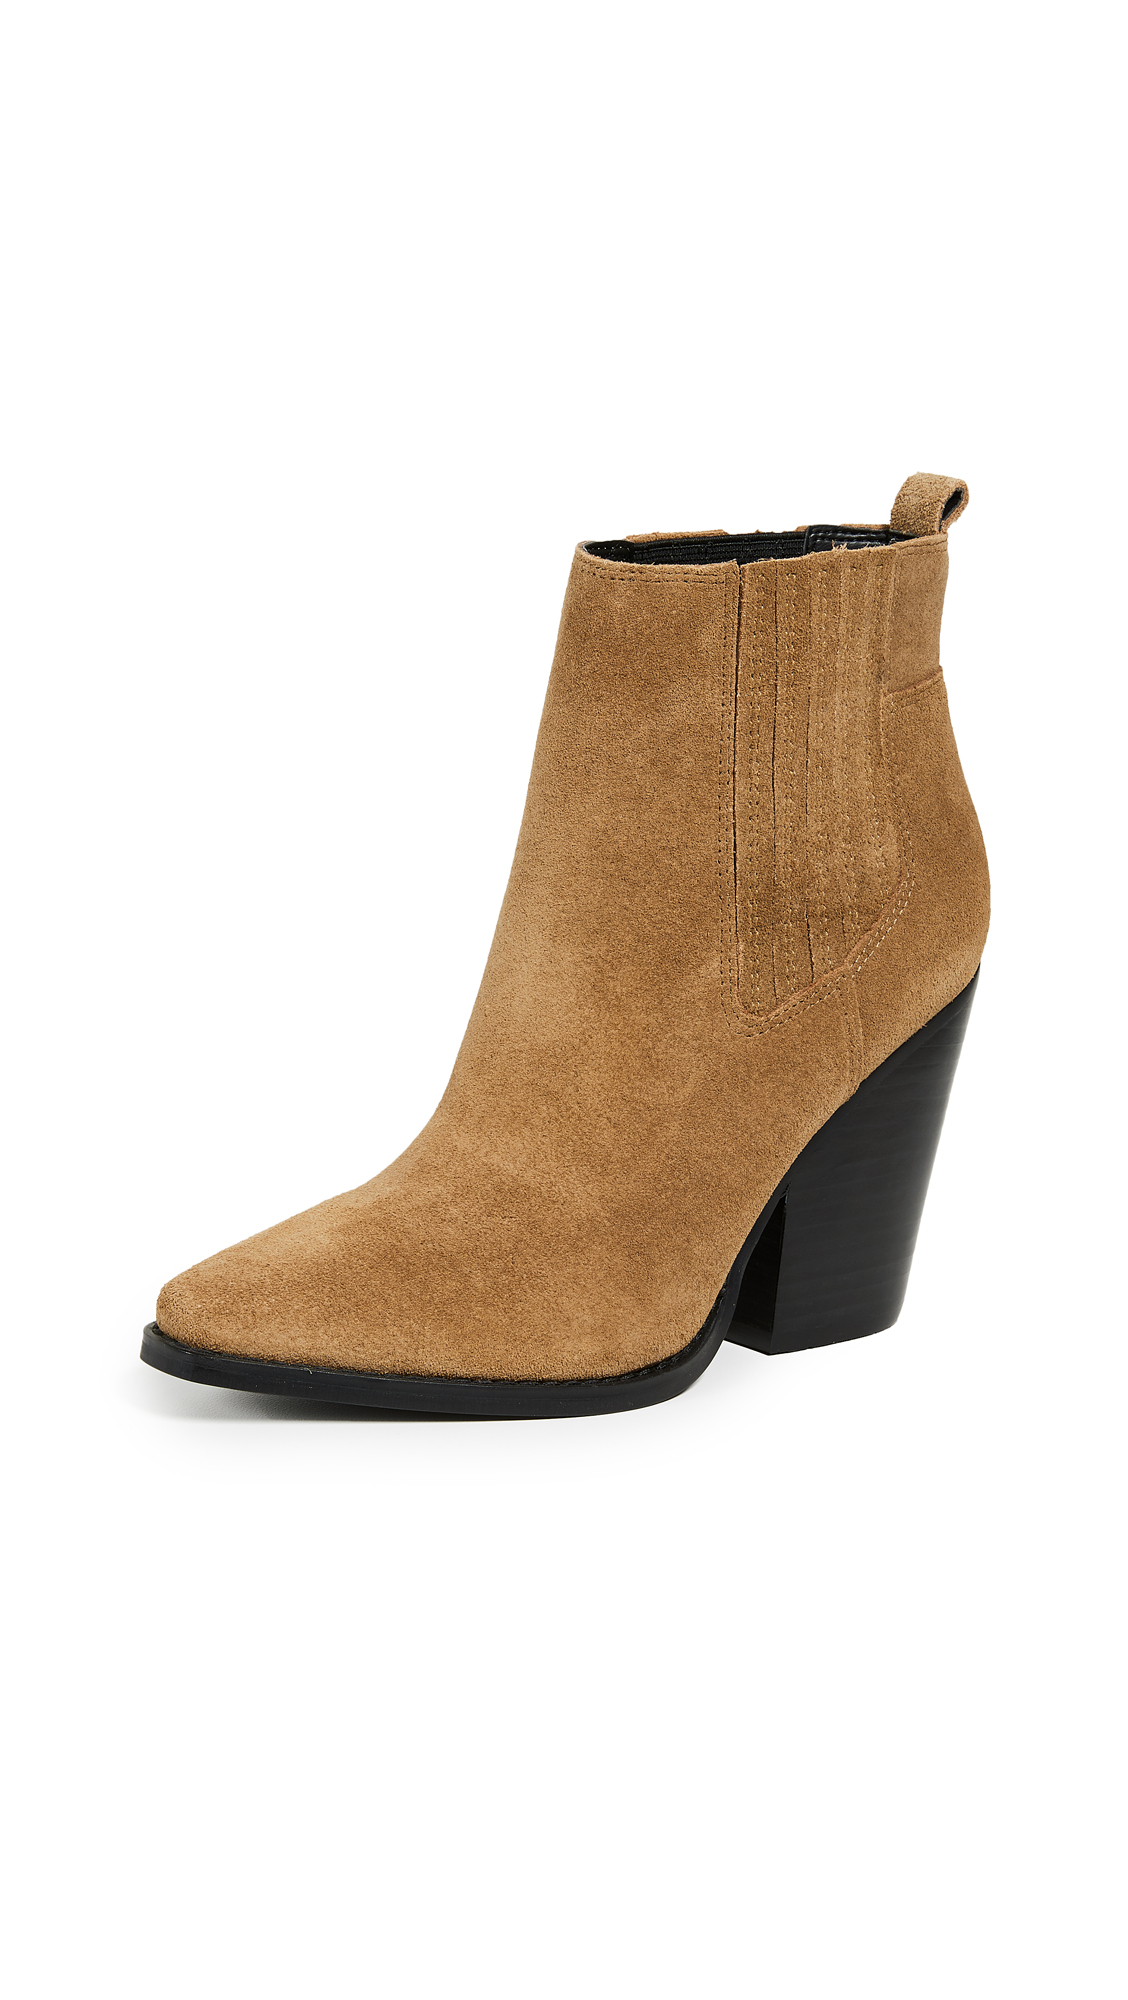 KENDALL + KYLIE Colt Western Booties - Saddle